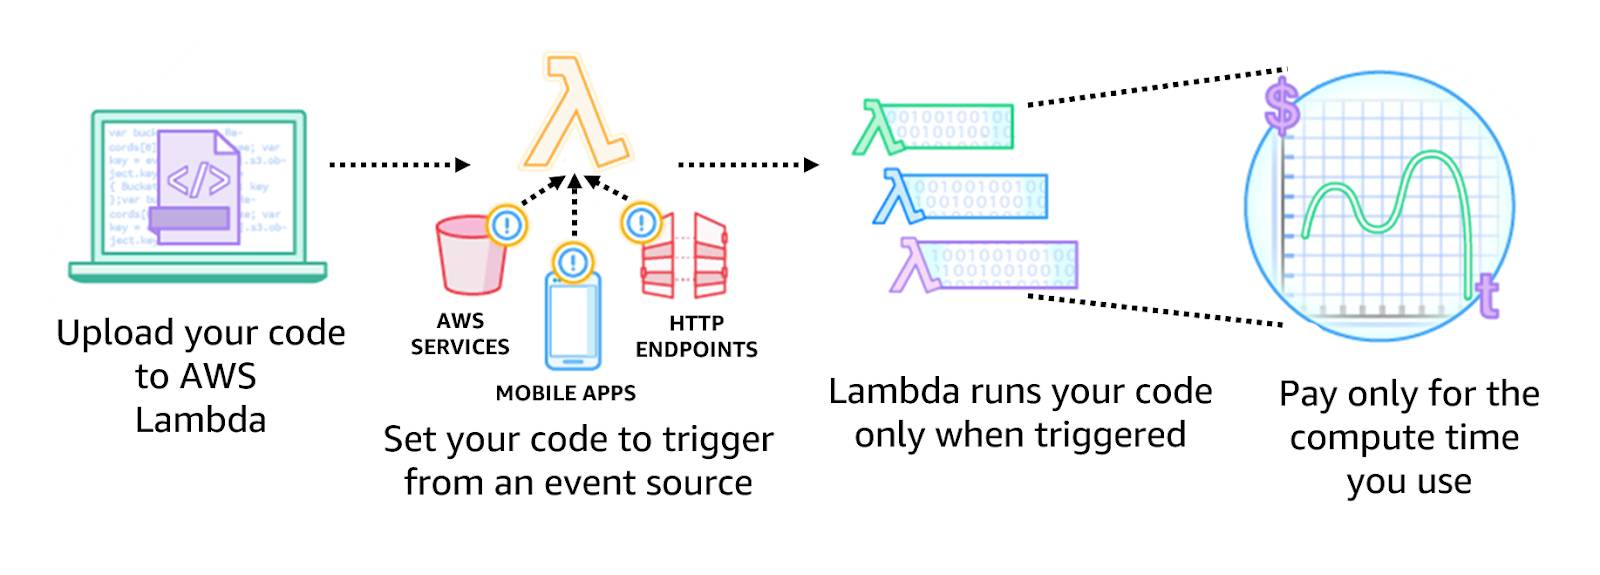 Graphic showing a series of steps: Upload your code to AWS Lambda. Set your code to trigger from an event source such as AWS services, mobile apps, or HTTP endpoints. Lambda runs your code only when triggered. You only pay for the compute time you use.